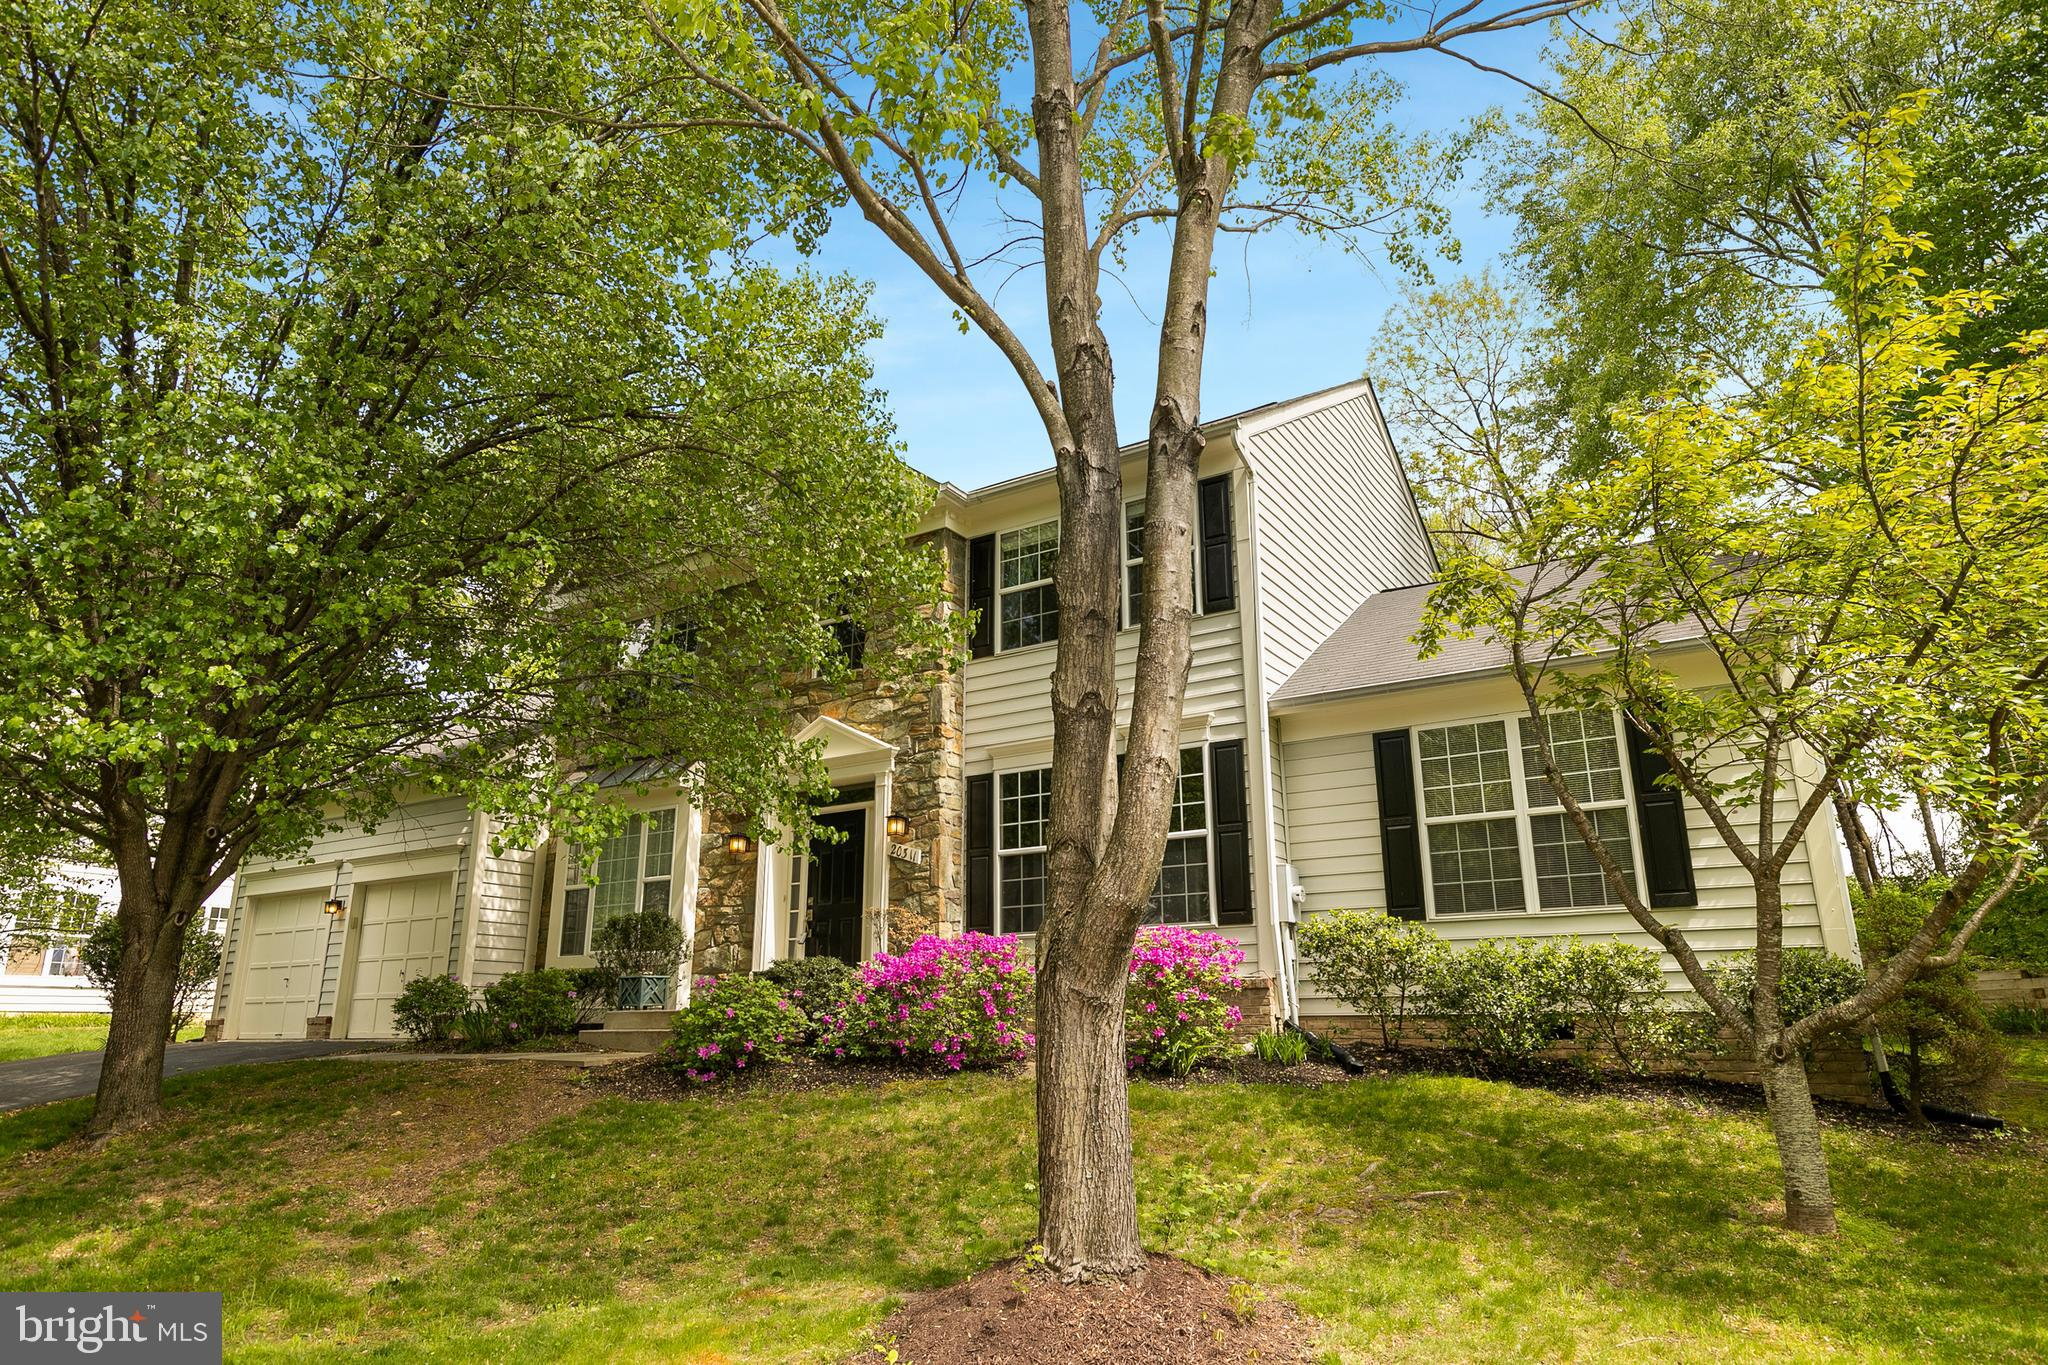 20311 OYSTER BAY TERRACE, GAITHERSBURG, MD 20886